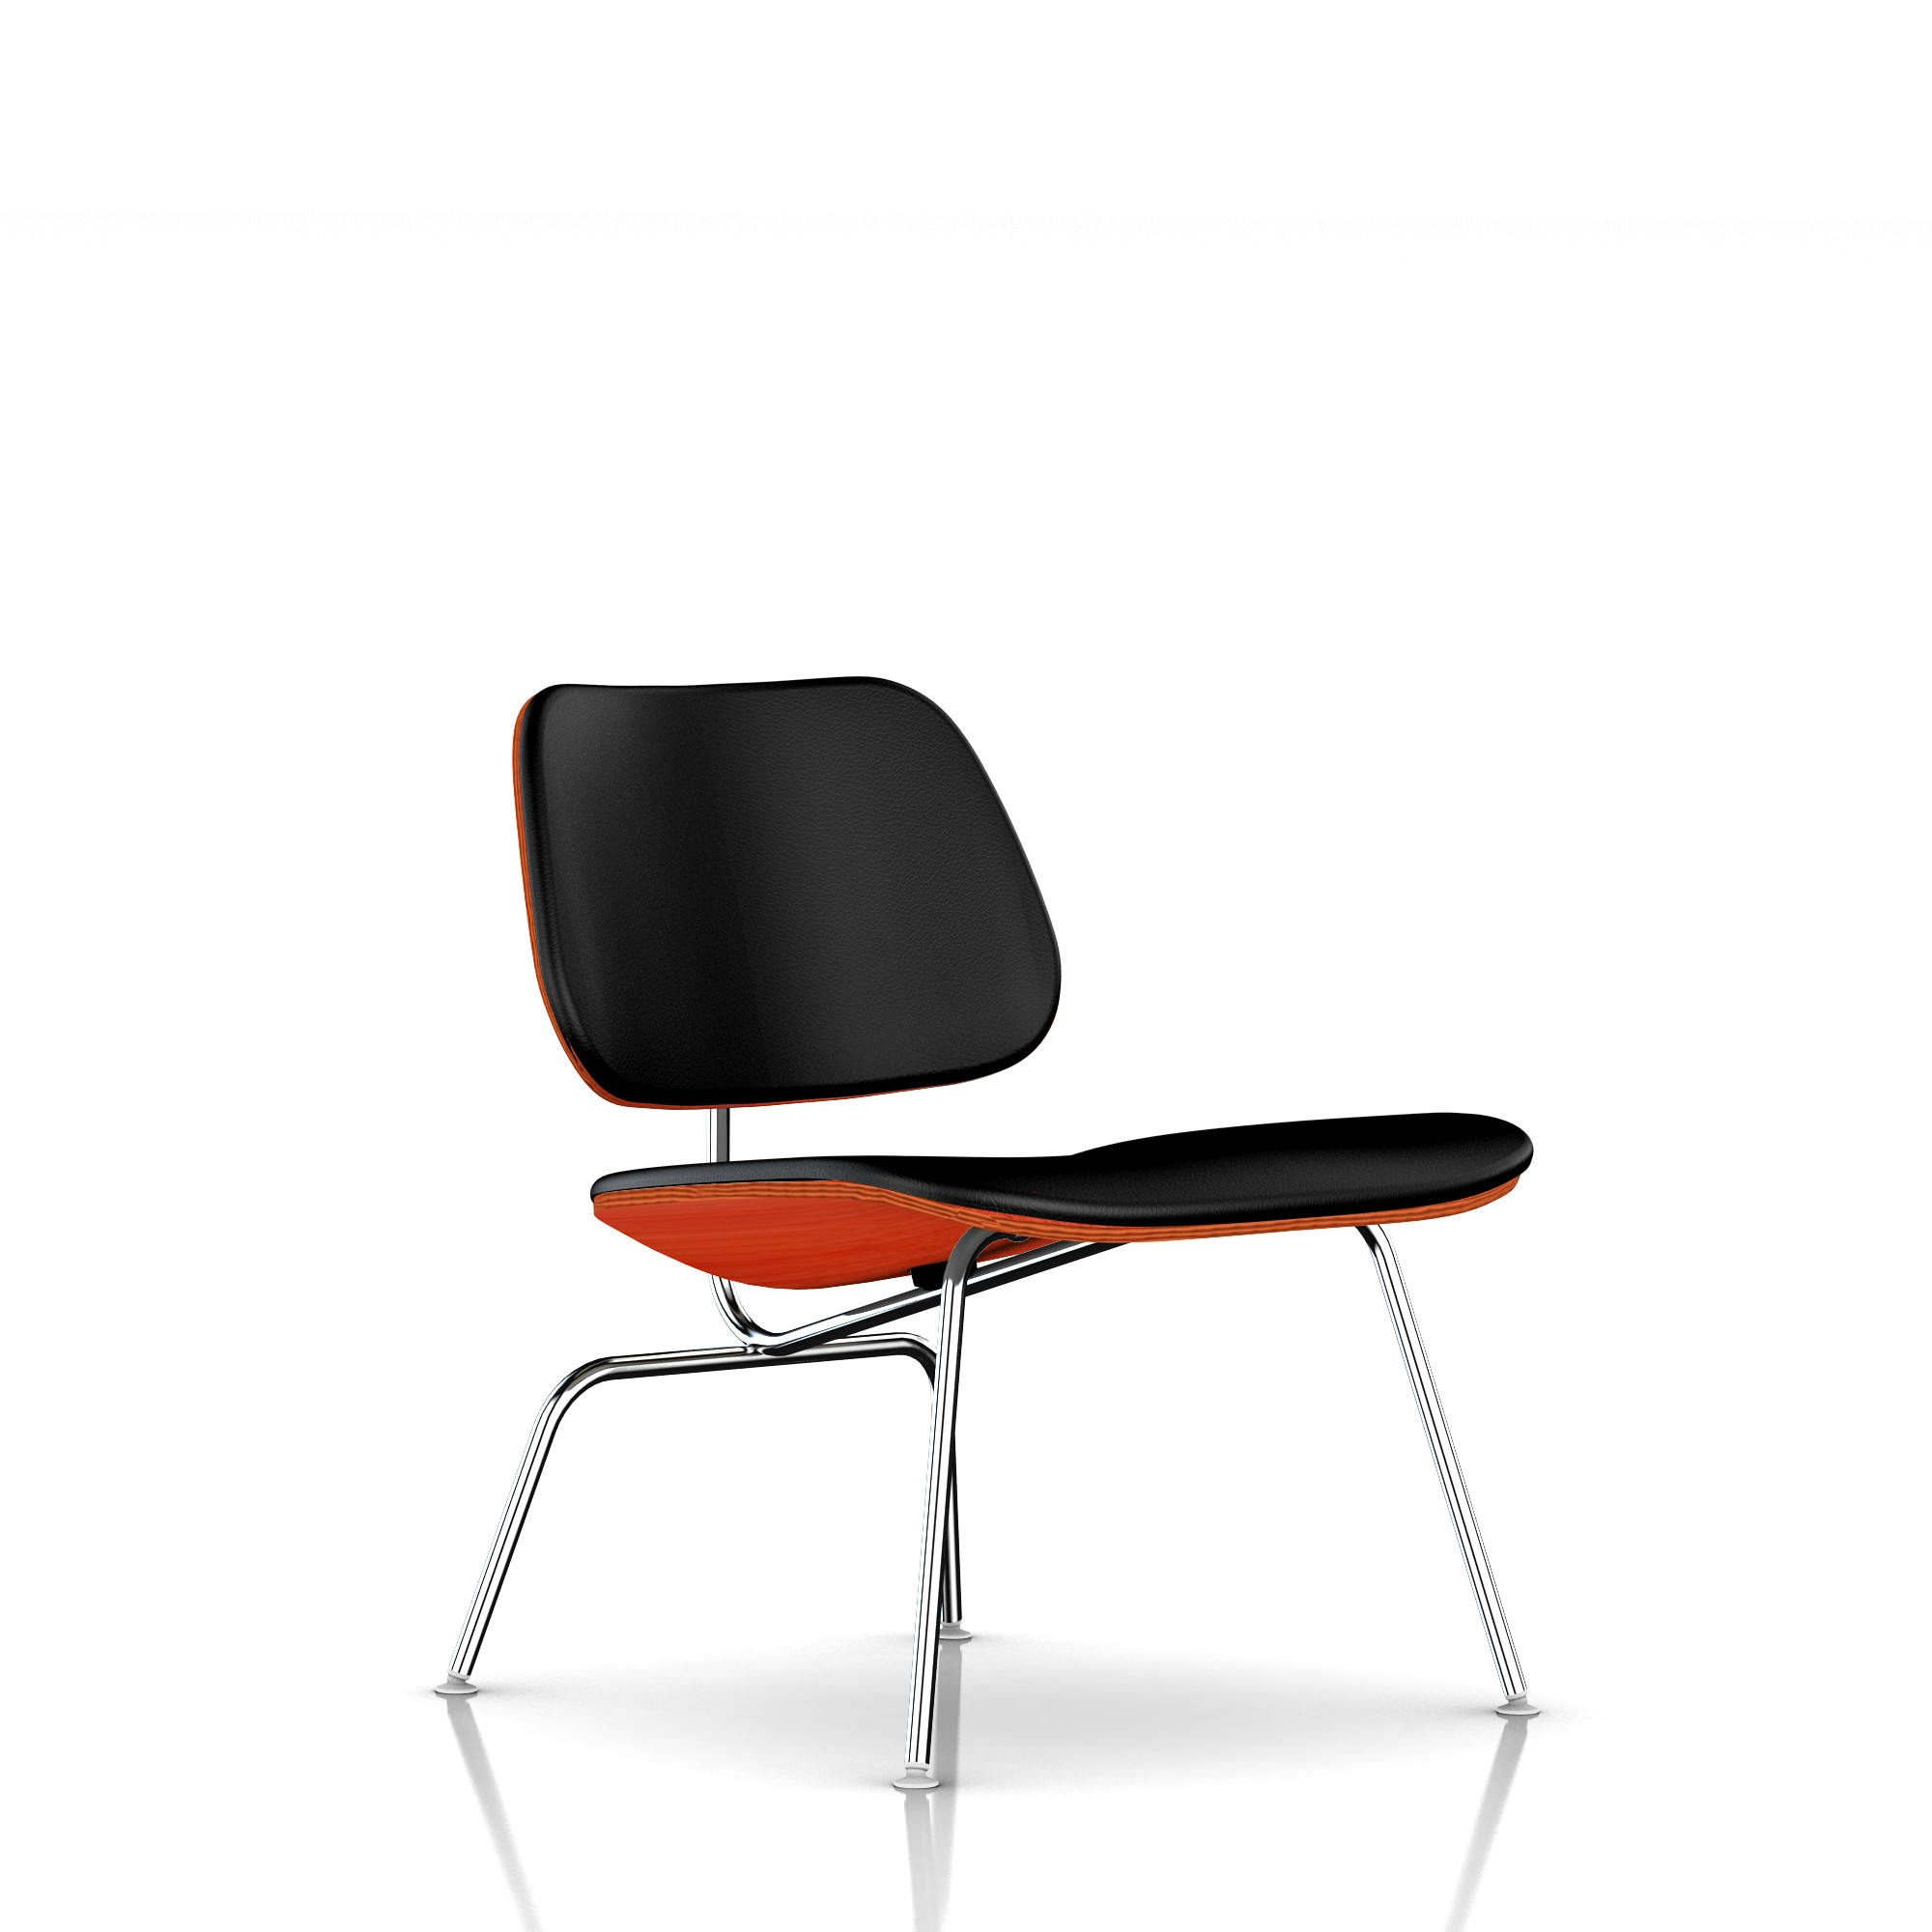 Eames Molded Plywood Lounge Chair in Black MCL Leather by Herman Miller